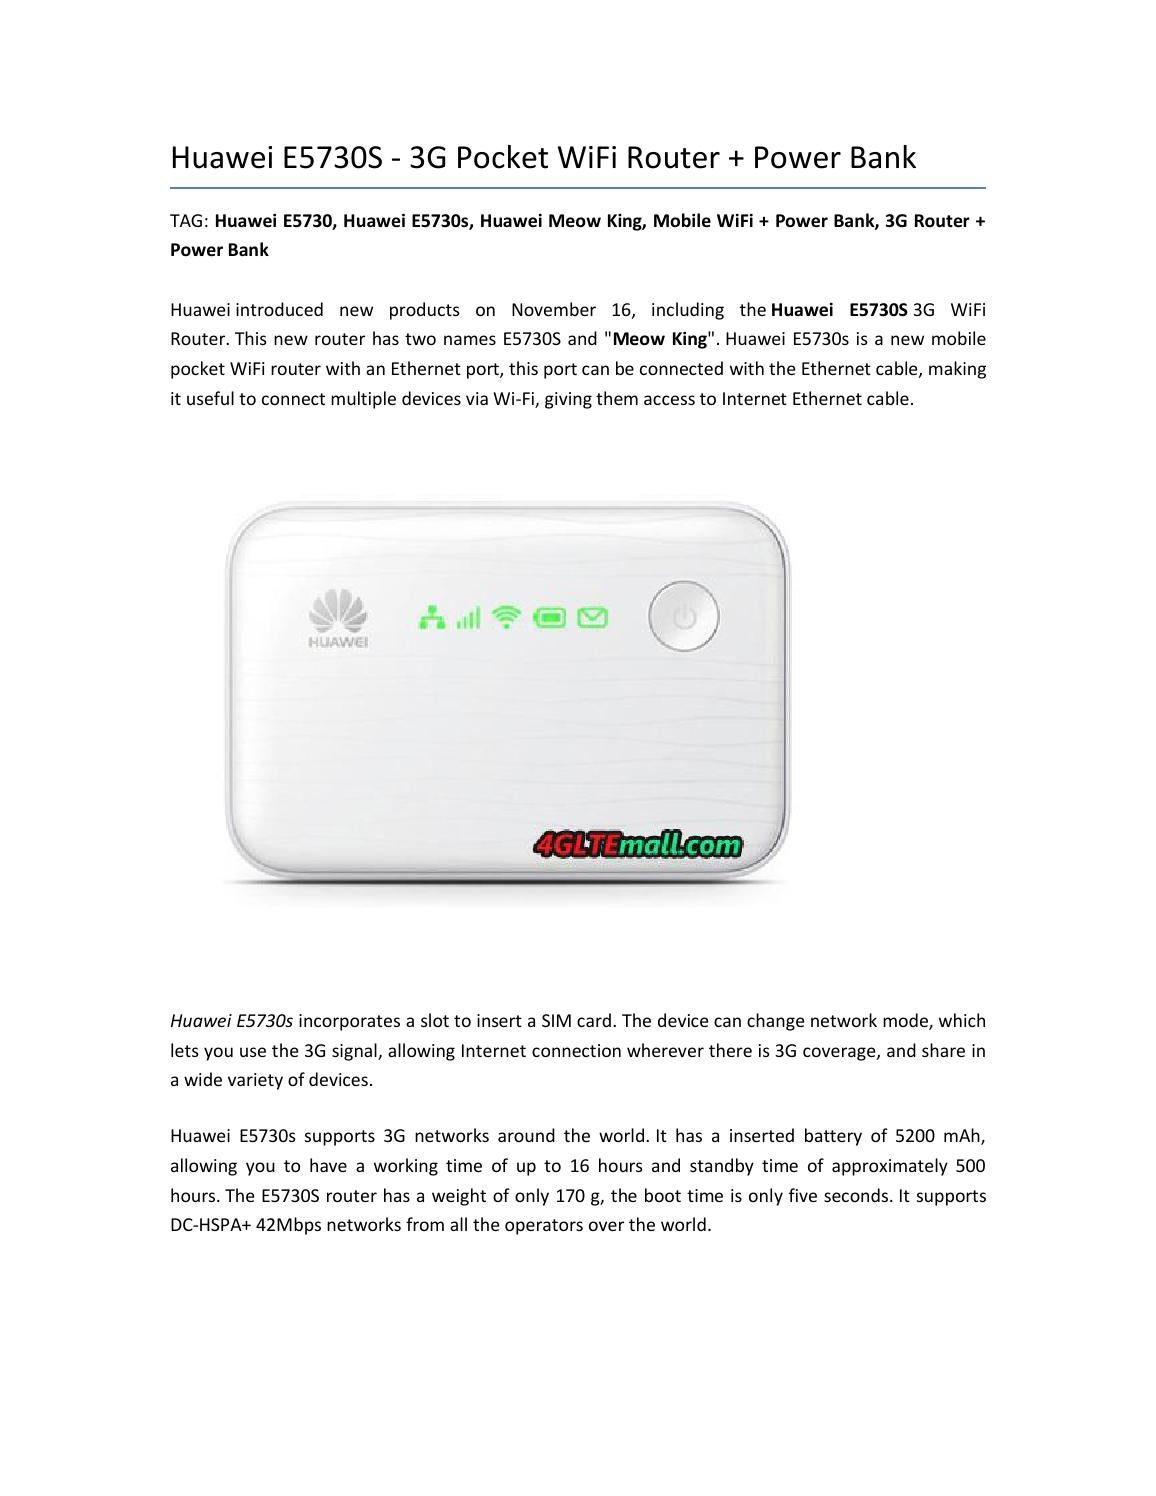 Huawei E5730S - 3G Pocket WiFi Router + Power Bank by Lte Mall - issuu